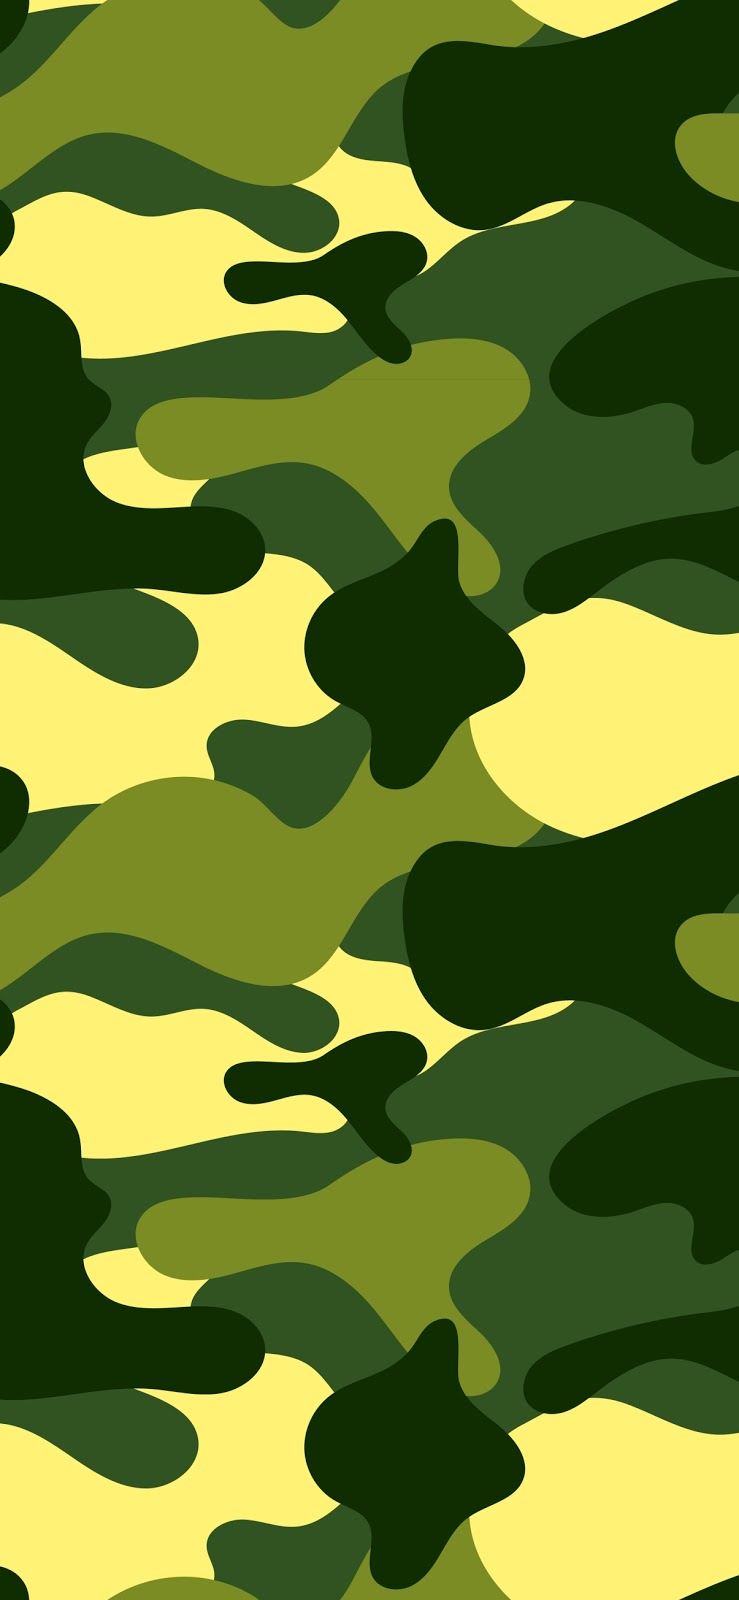 camo camouflage wallpaper hd 1205 x 2609